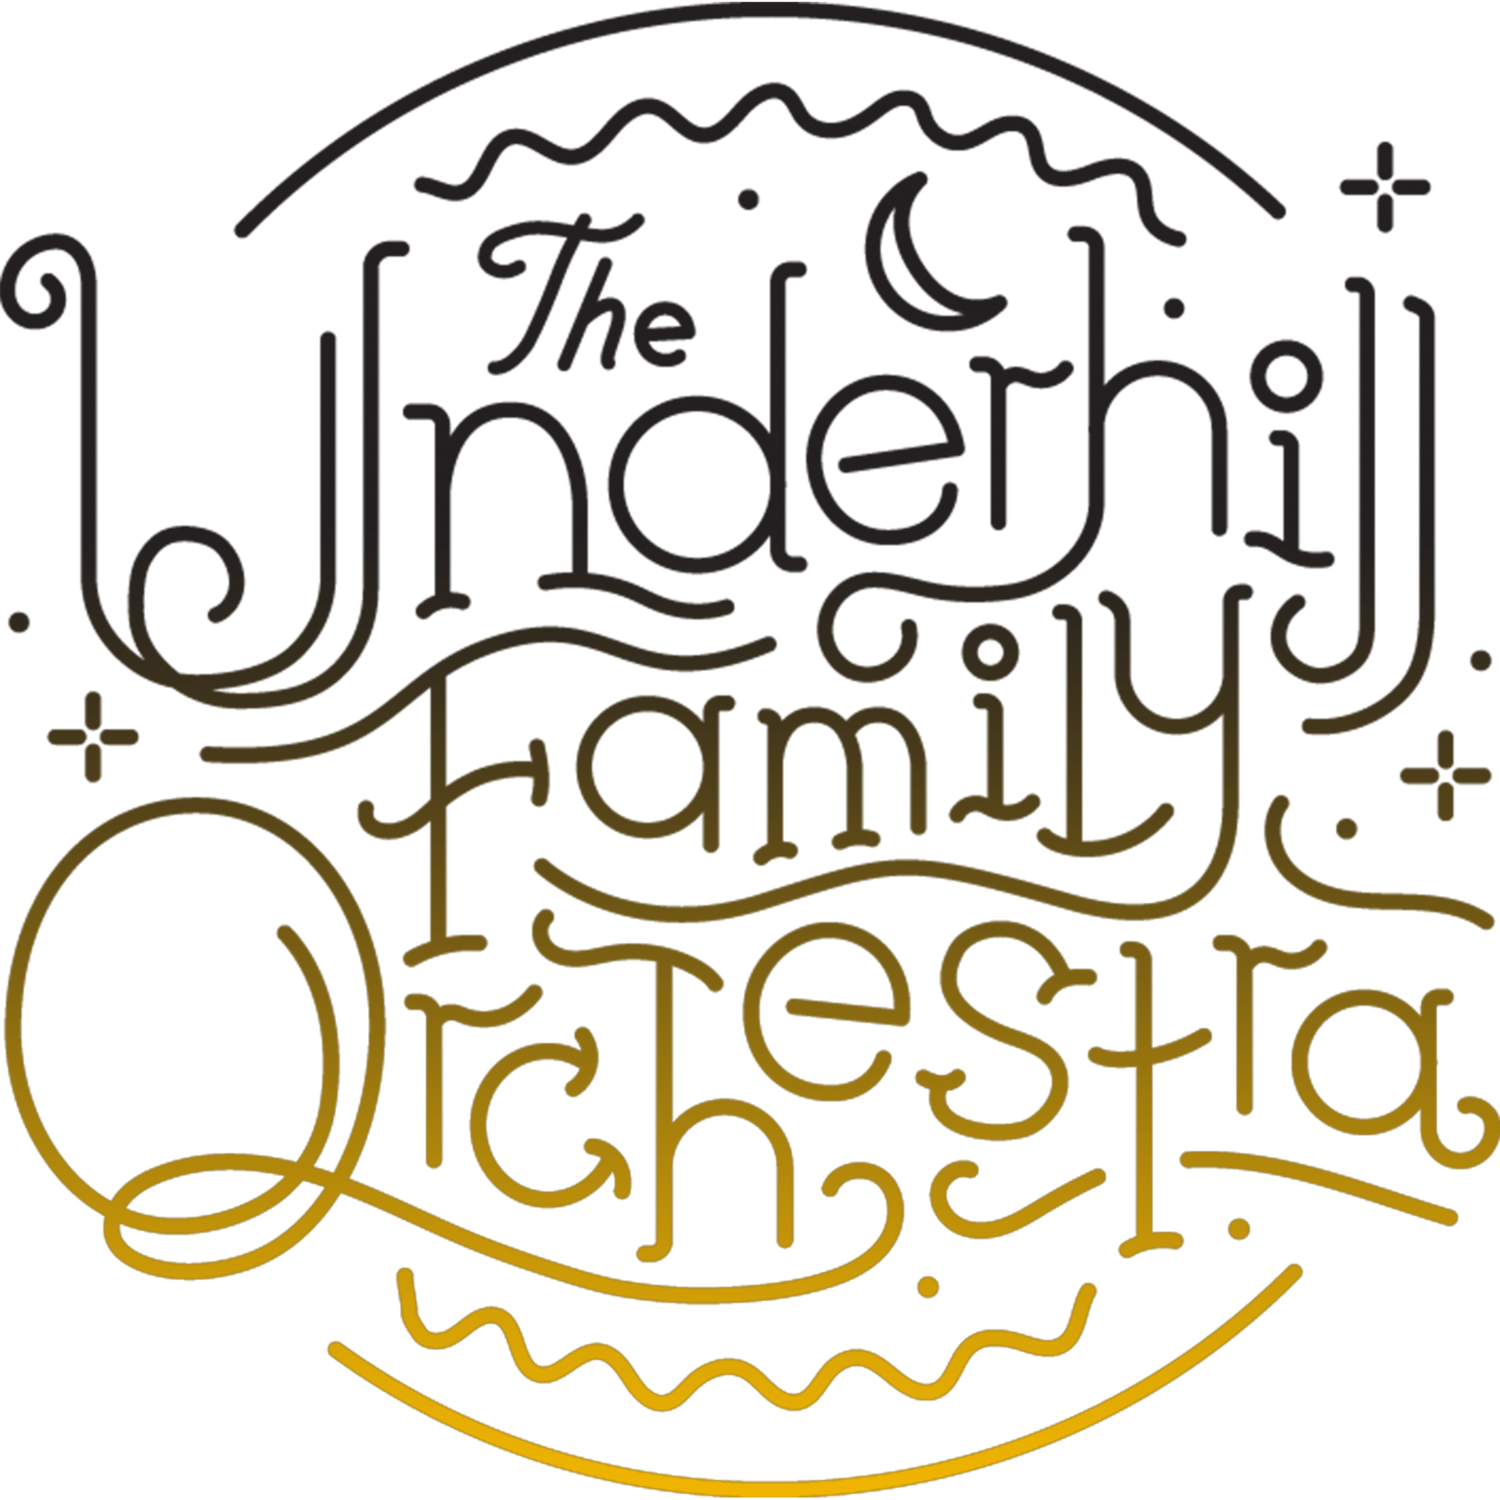 The Underhill Family Orchestra